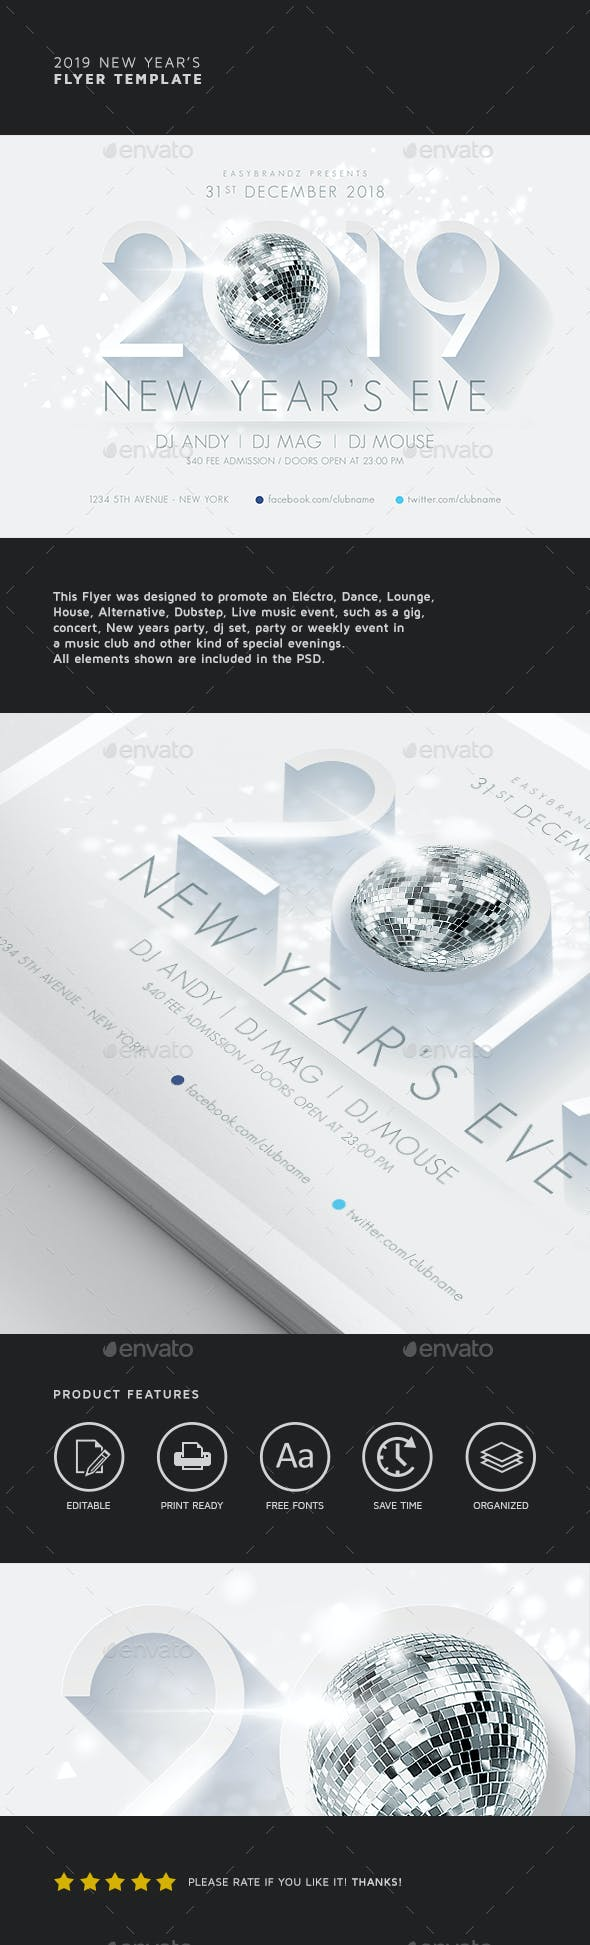 2019 new years flyer template holidays events